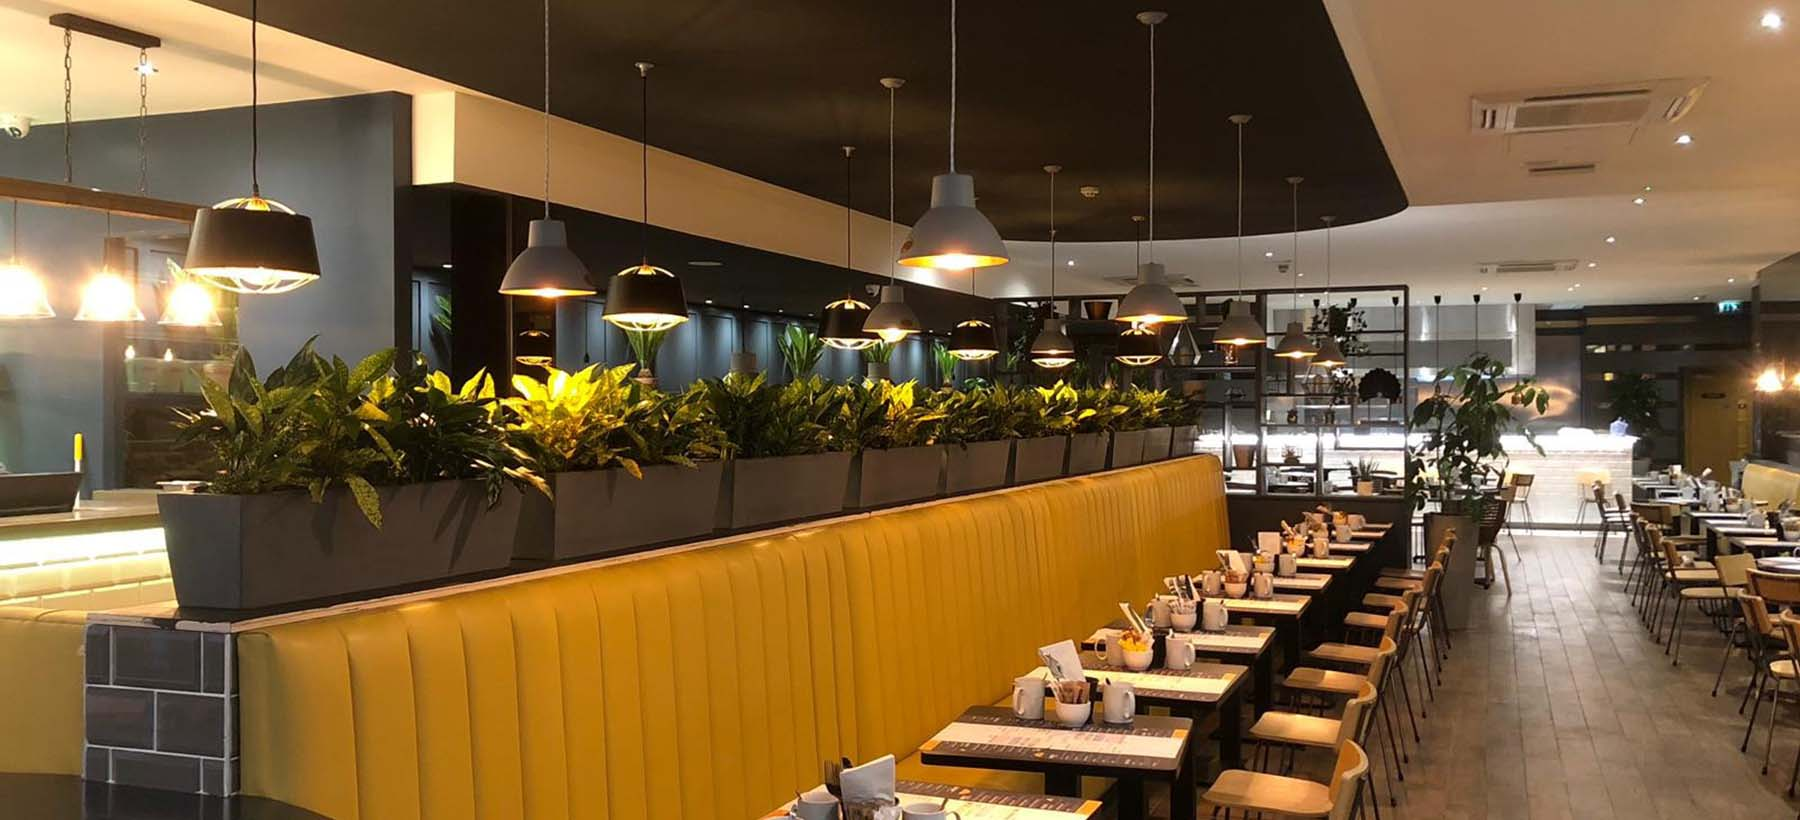 Colourful live plants in grey stone planters divide table space, provide privacy and create atmostphere in chic restaurant